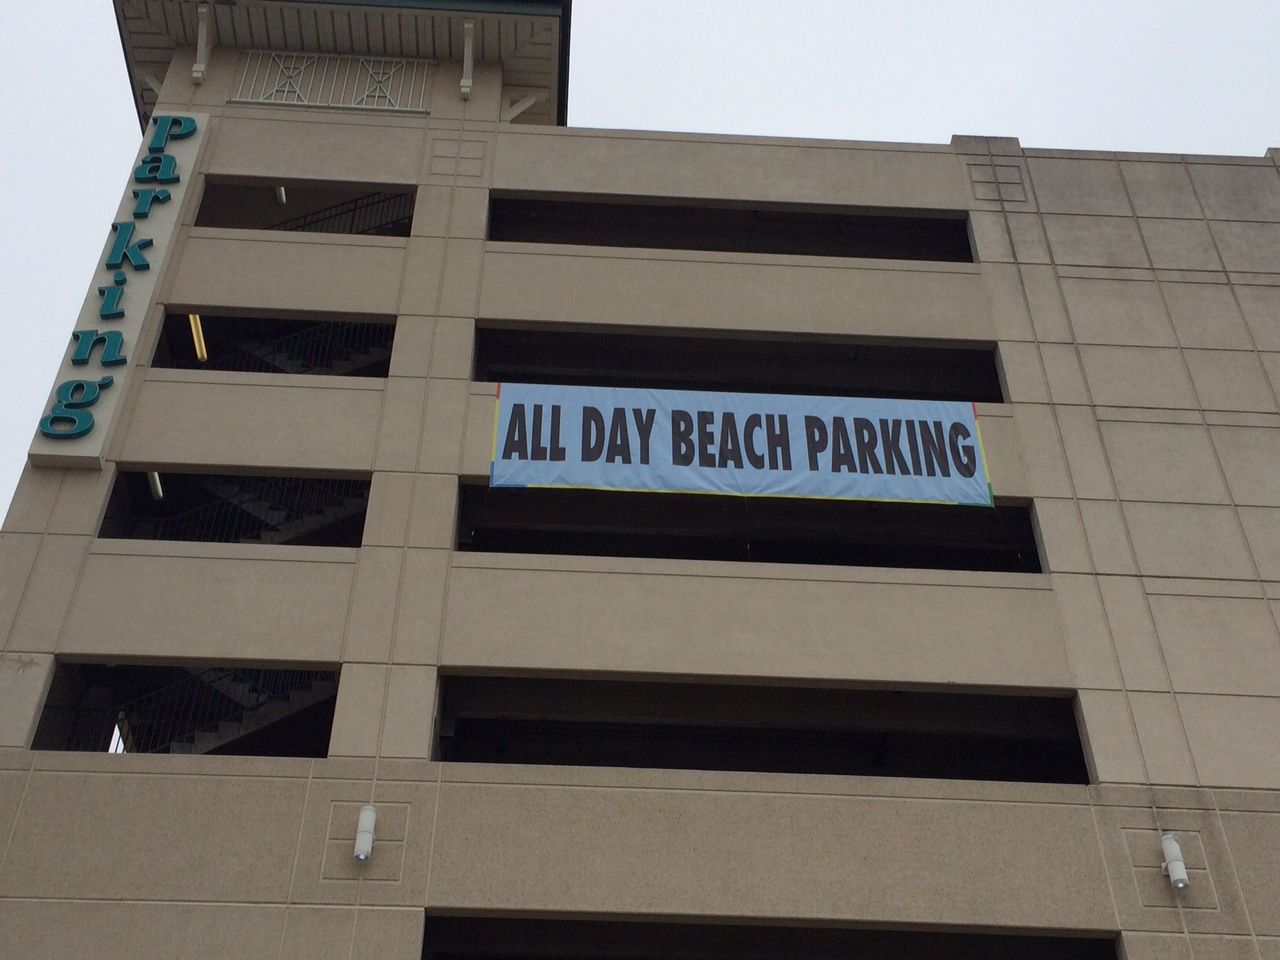 Virginia Beach Parking 34th Street Garage All Day Great Rates